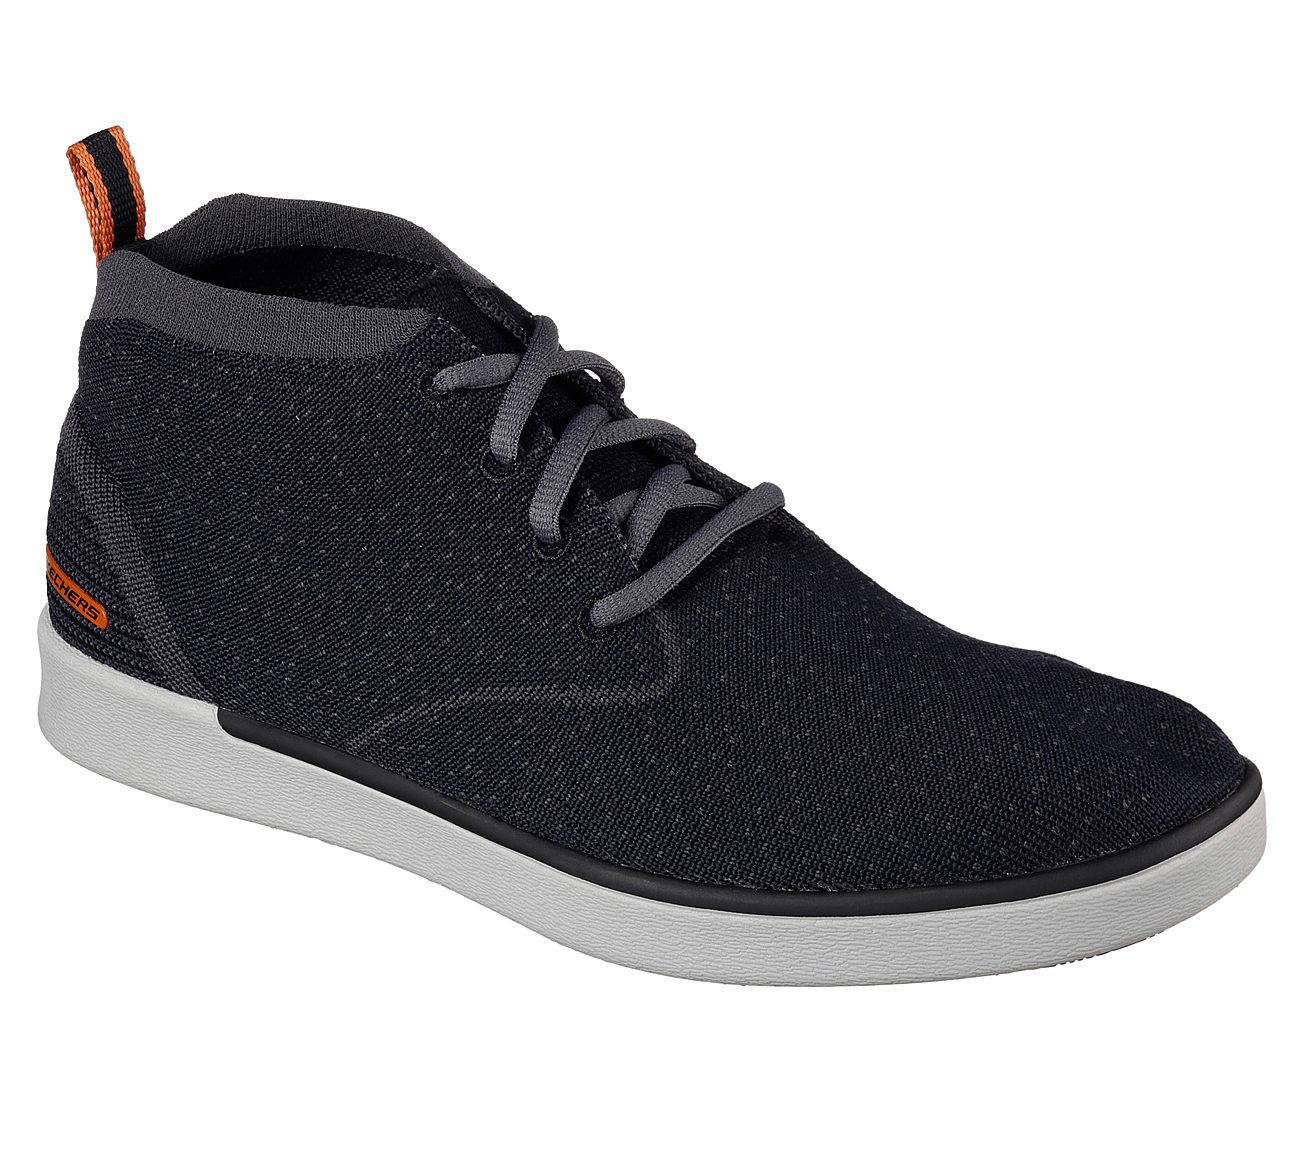 14a88e5ab3b0 Buy SKECHERS Boyar - Taction USA Casuals Shoes only  50.00